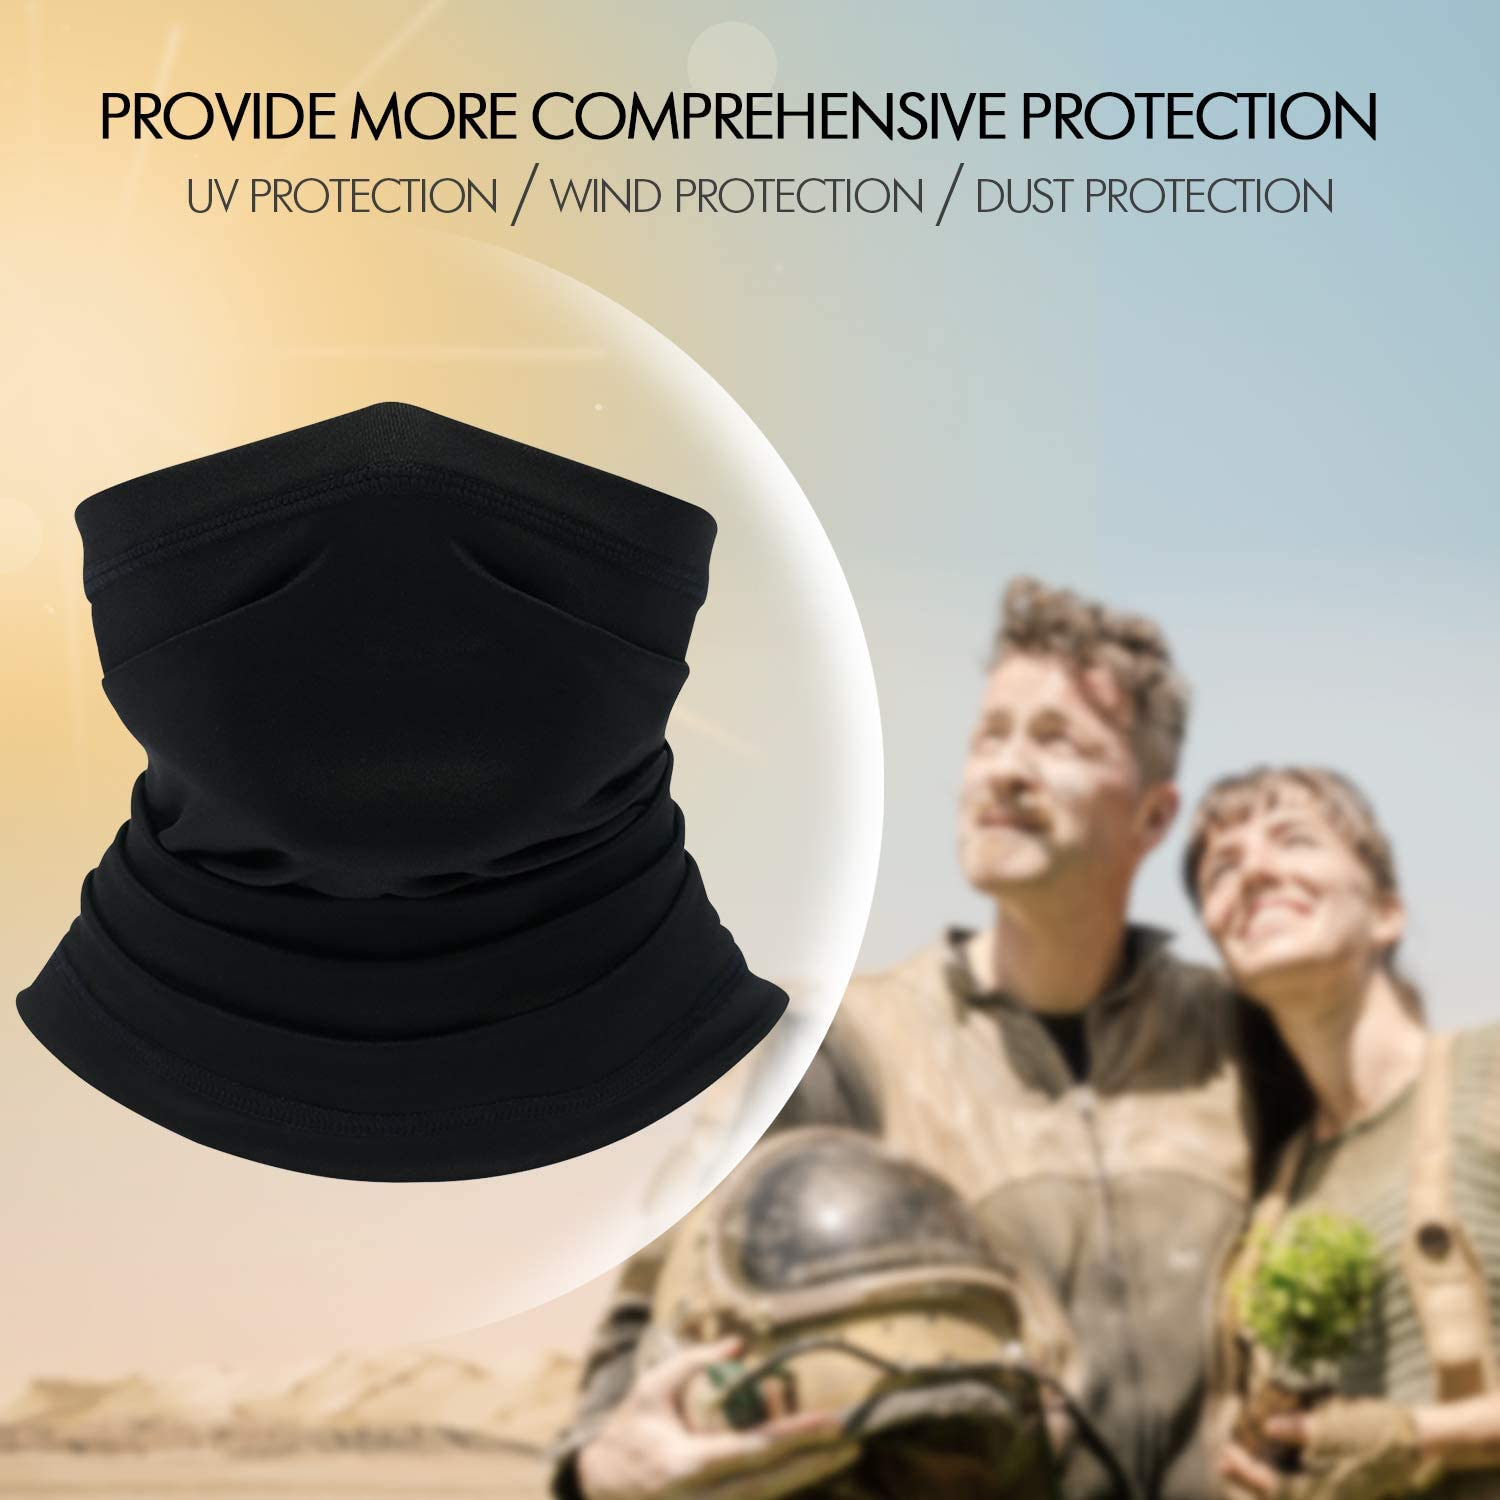 Set of 2 Black and Sky Blue Your Choice Half Face Mask for Sun Protection Motorcycle Fishing Cooling Neck Gaiter for Men and Women